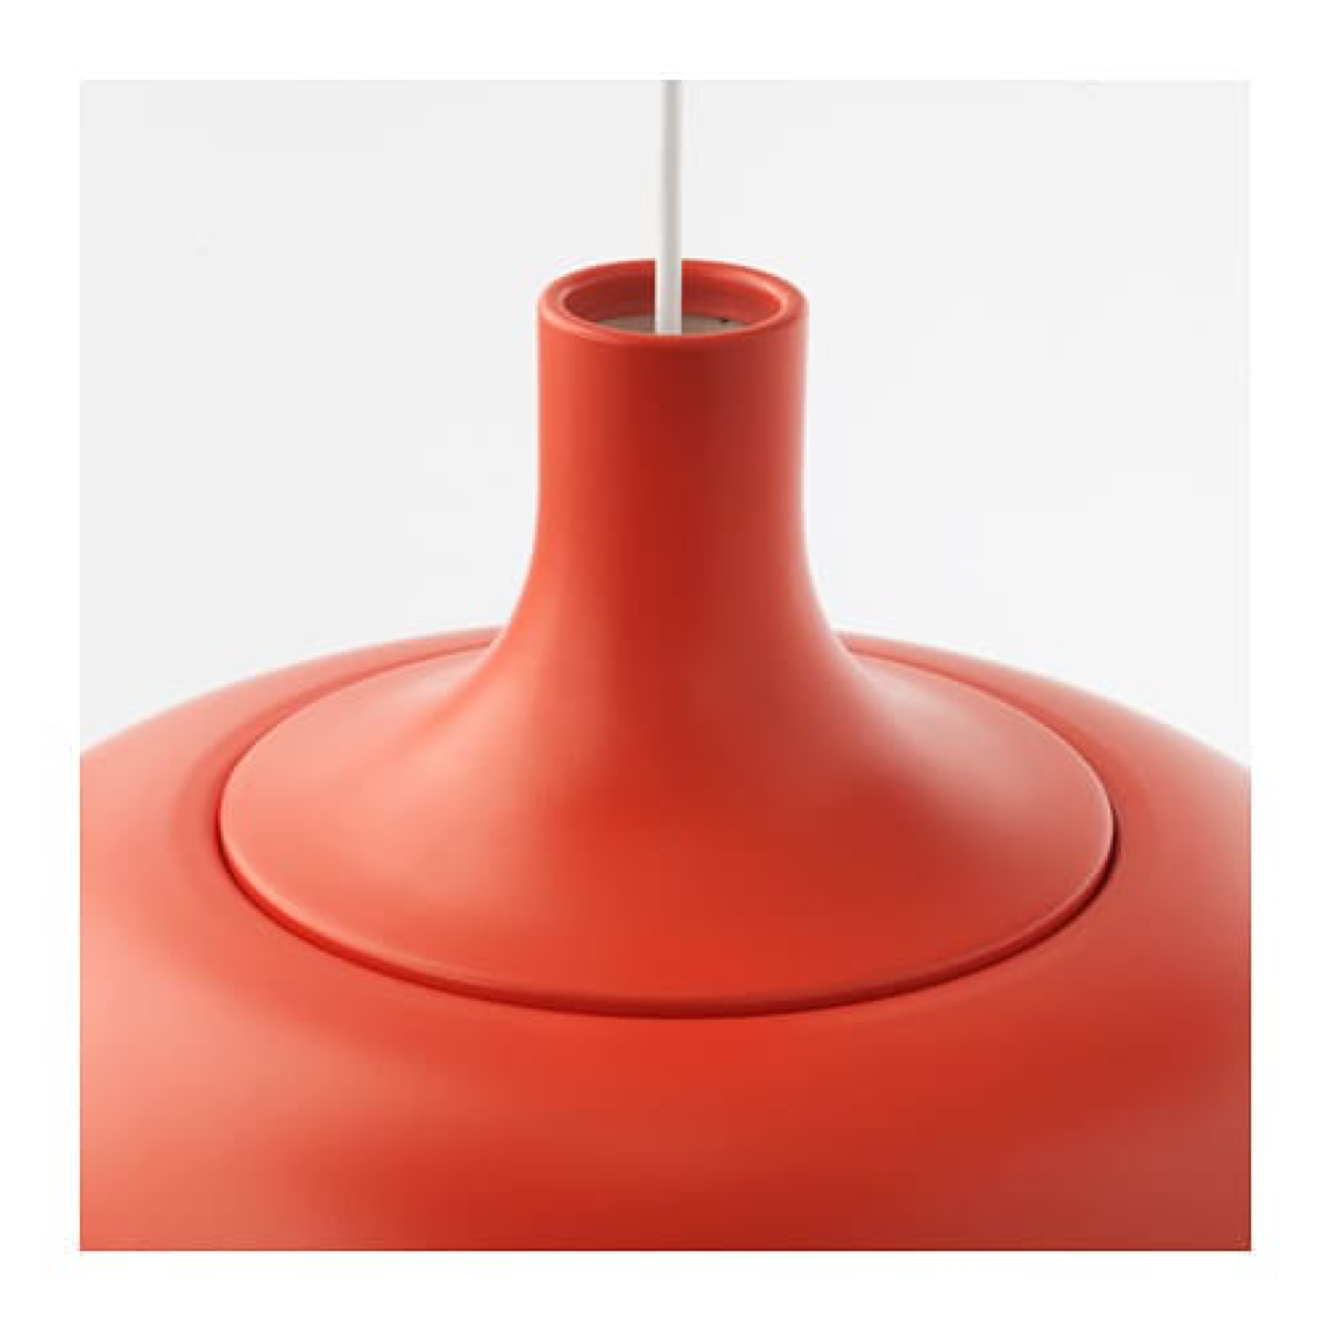 IKEA VAXJO Pendant Lamp Orange, Aluminum, 603.942.97 - NEW IN BOX